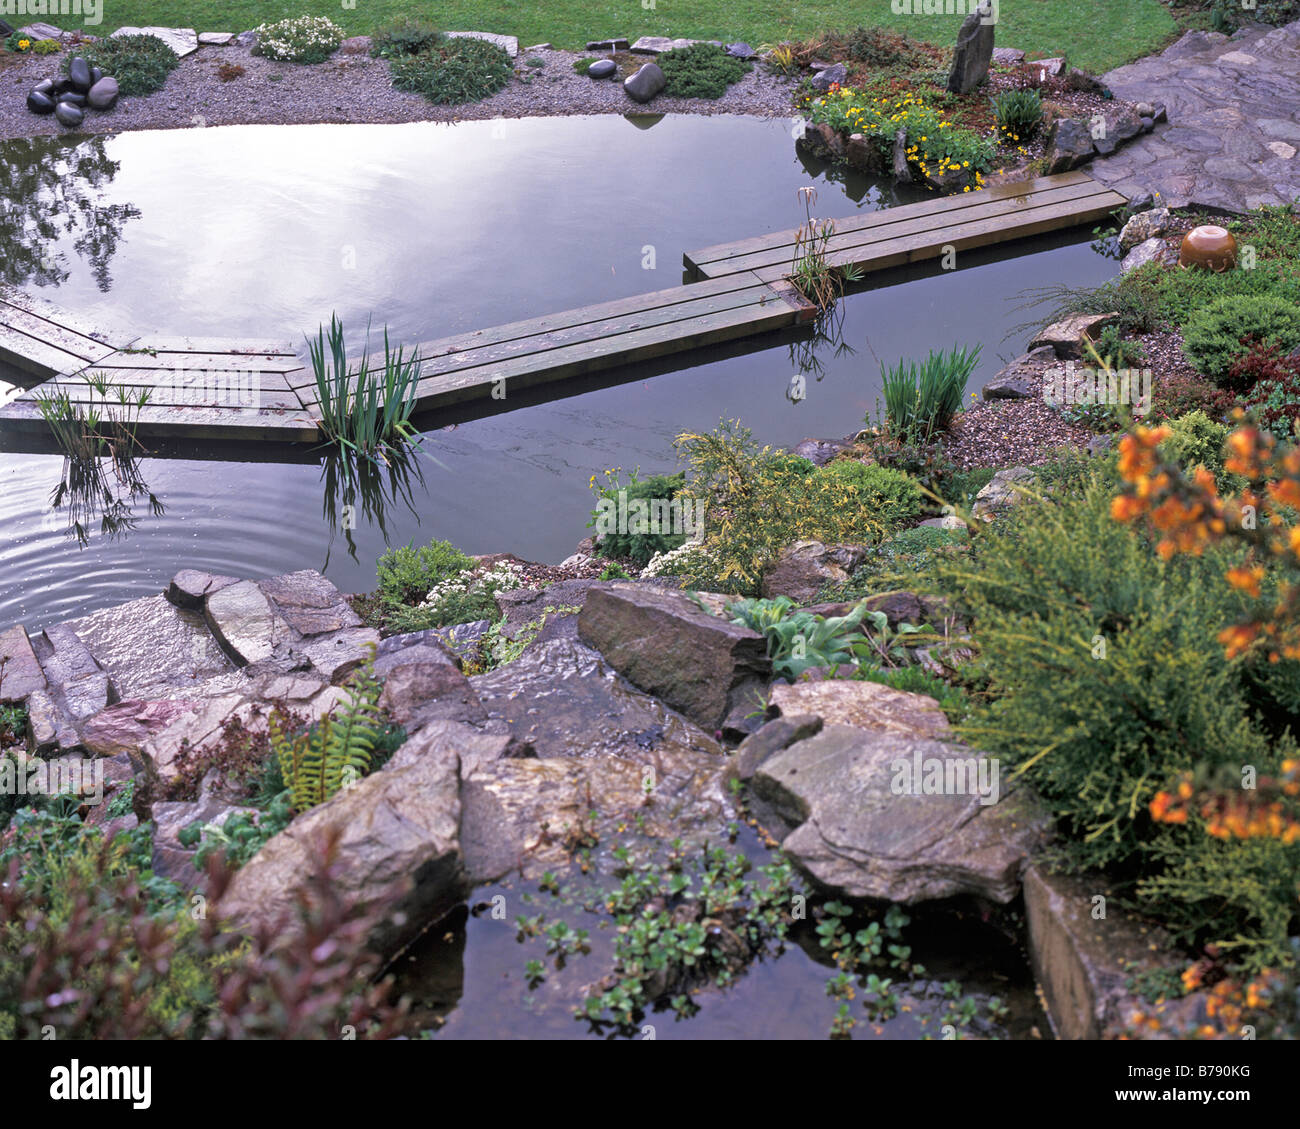 SAWN SOFTWOOD PLANKS MALE A BRIDGE ACROSS THIS NEW POND - Stock Image